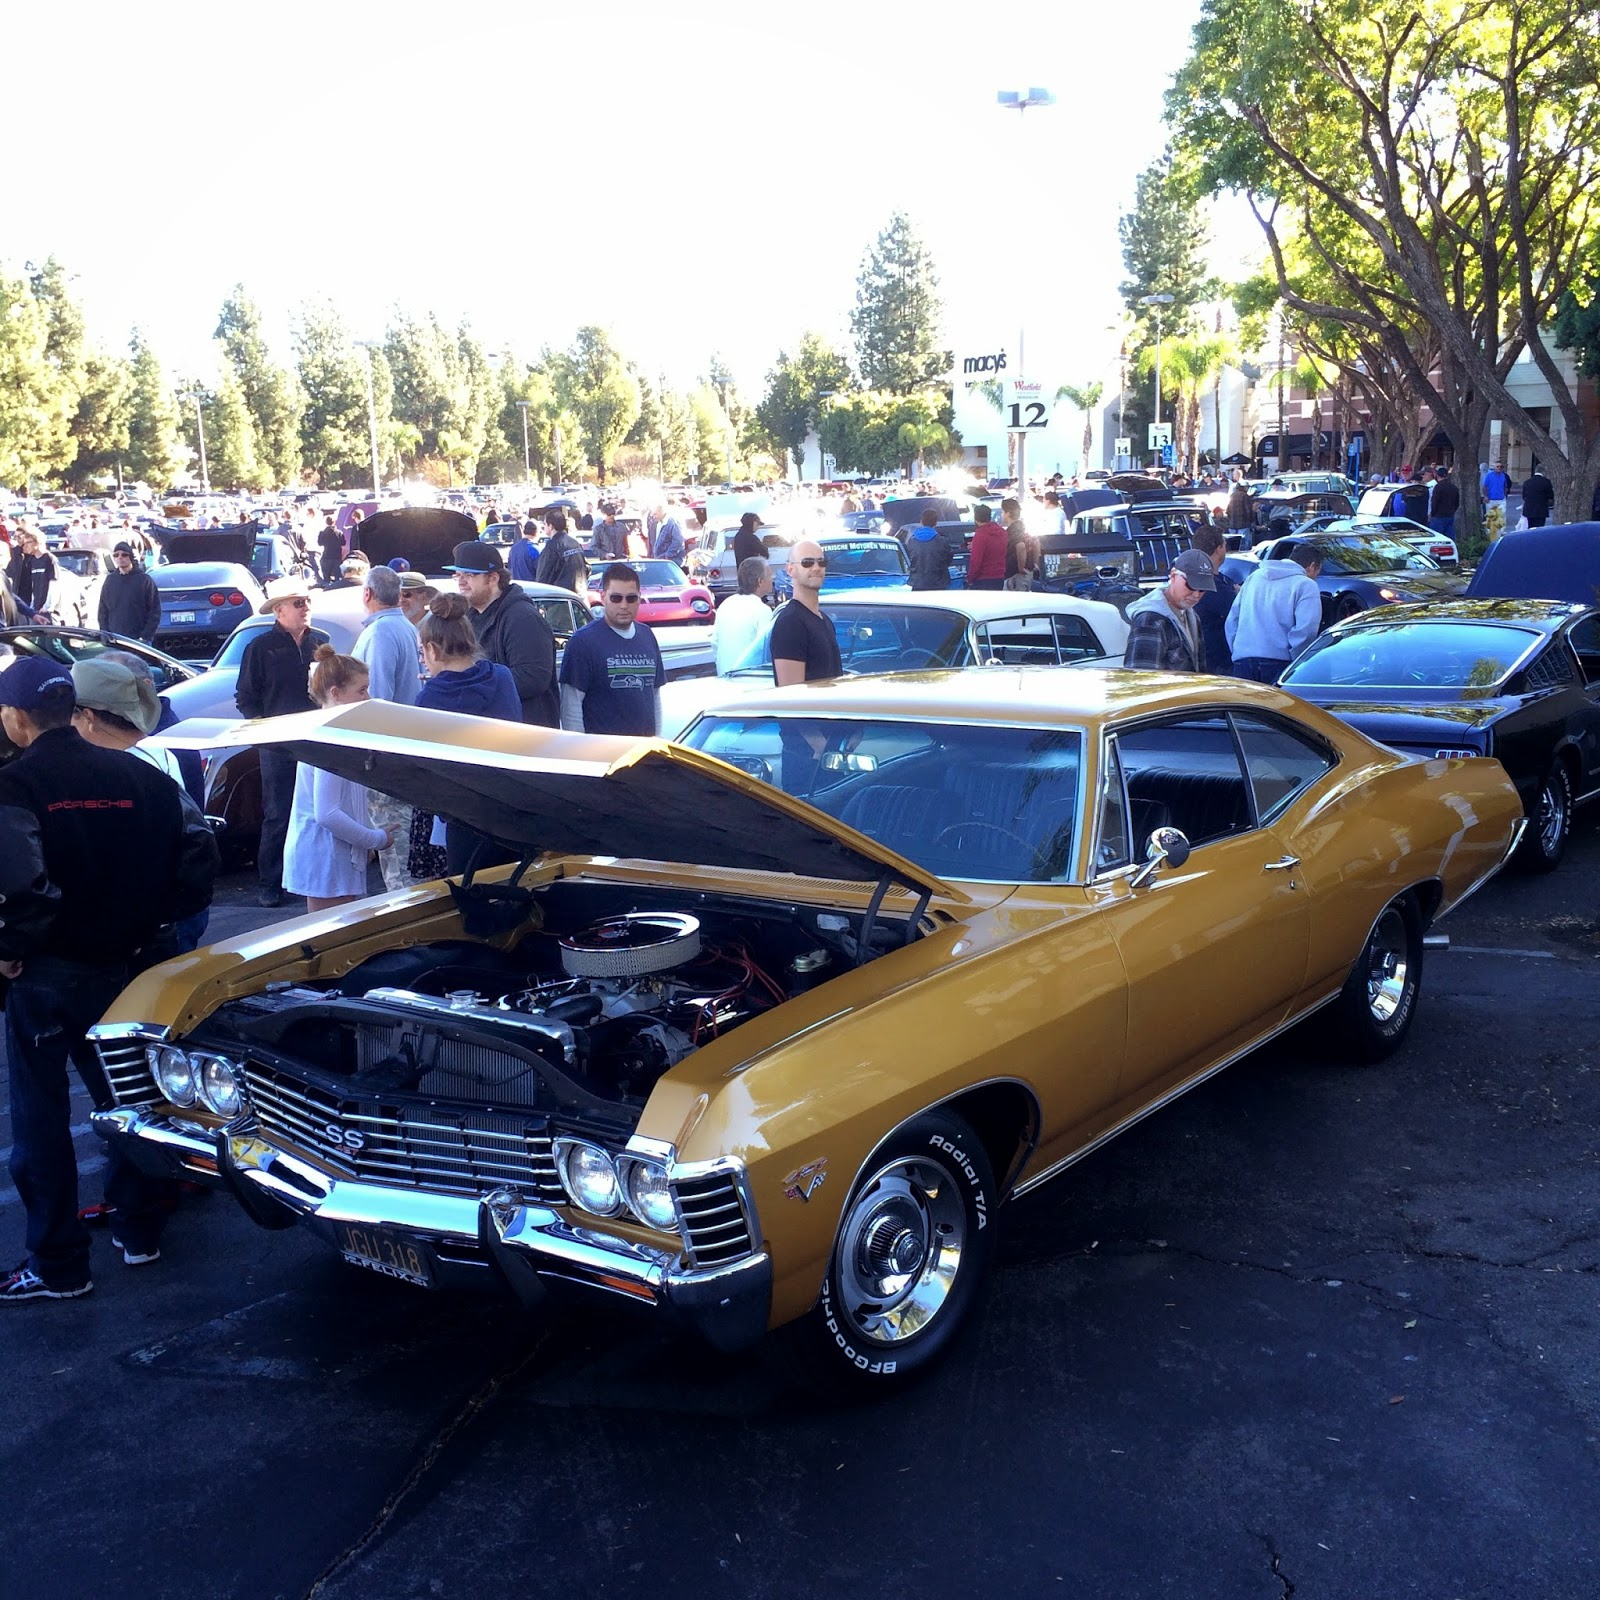 Covering Classic Cars Supercar Sunday Dia De Los Muertos Car - Classic car show california